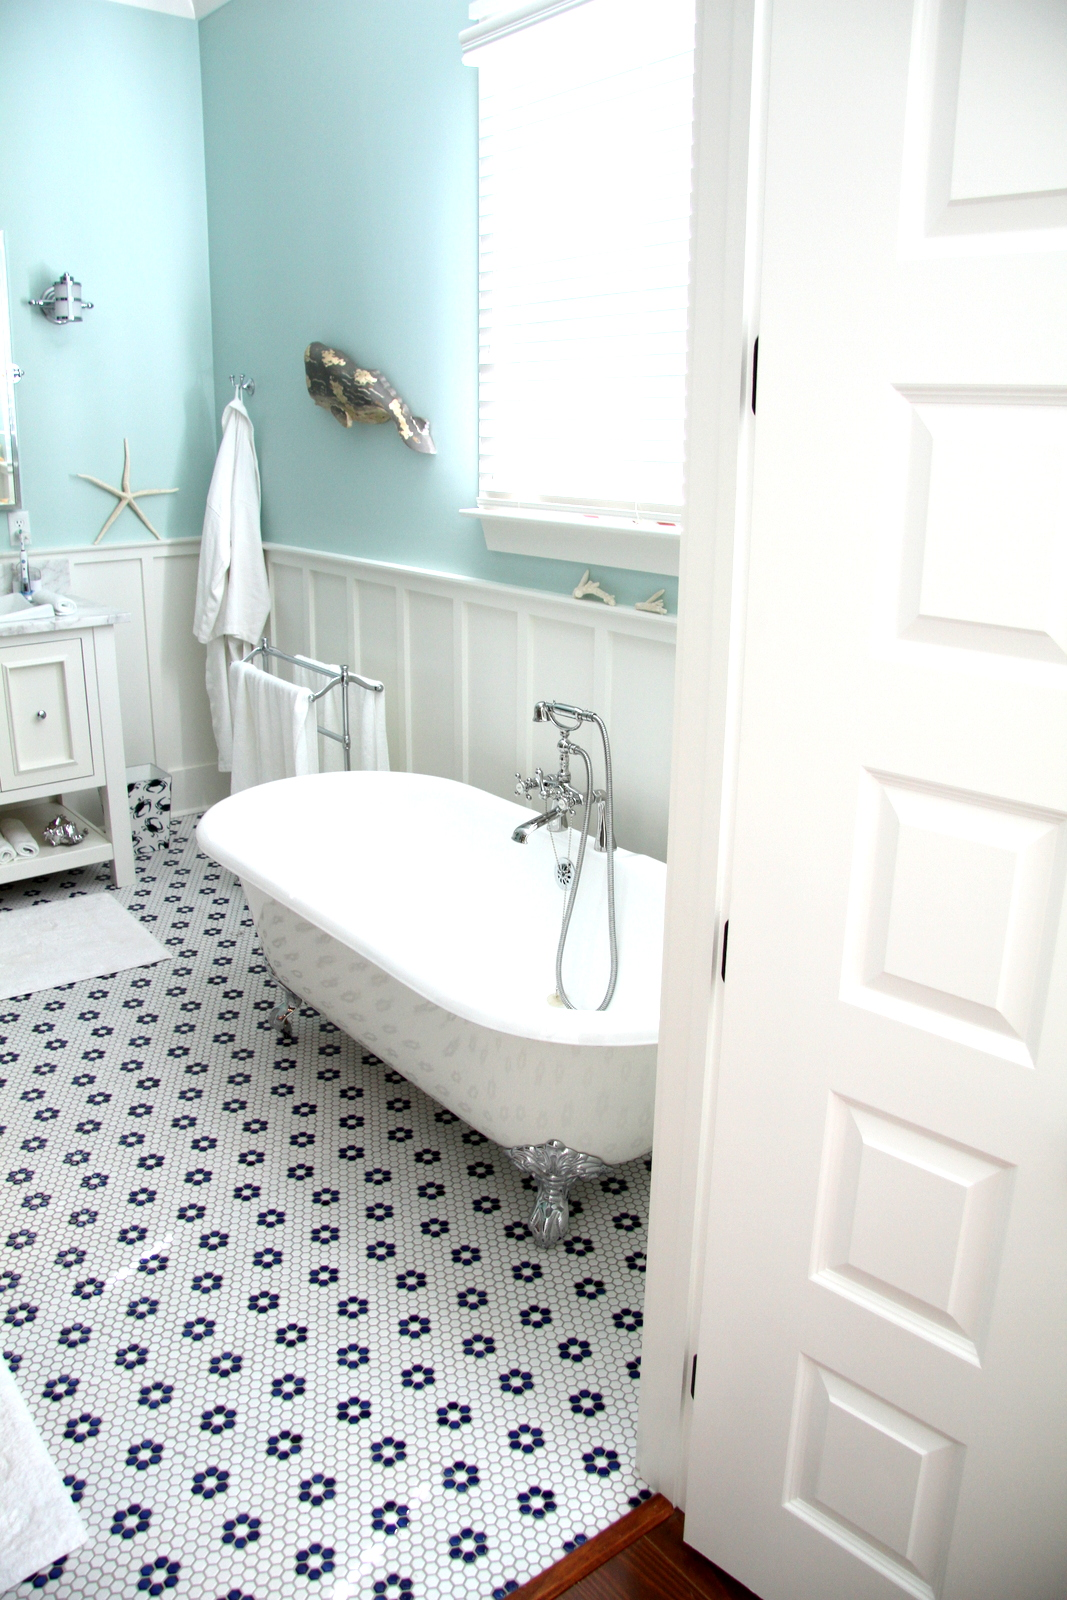 Floor tiles and clawfoot tubs are often used in our traditional Coastal homes from Thornhill Construction.